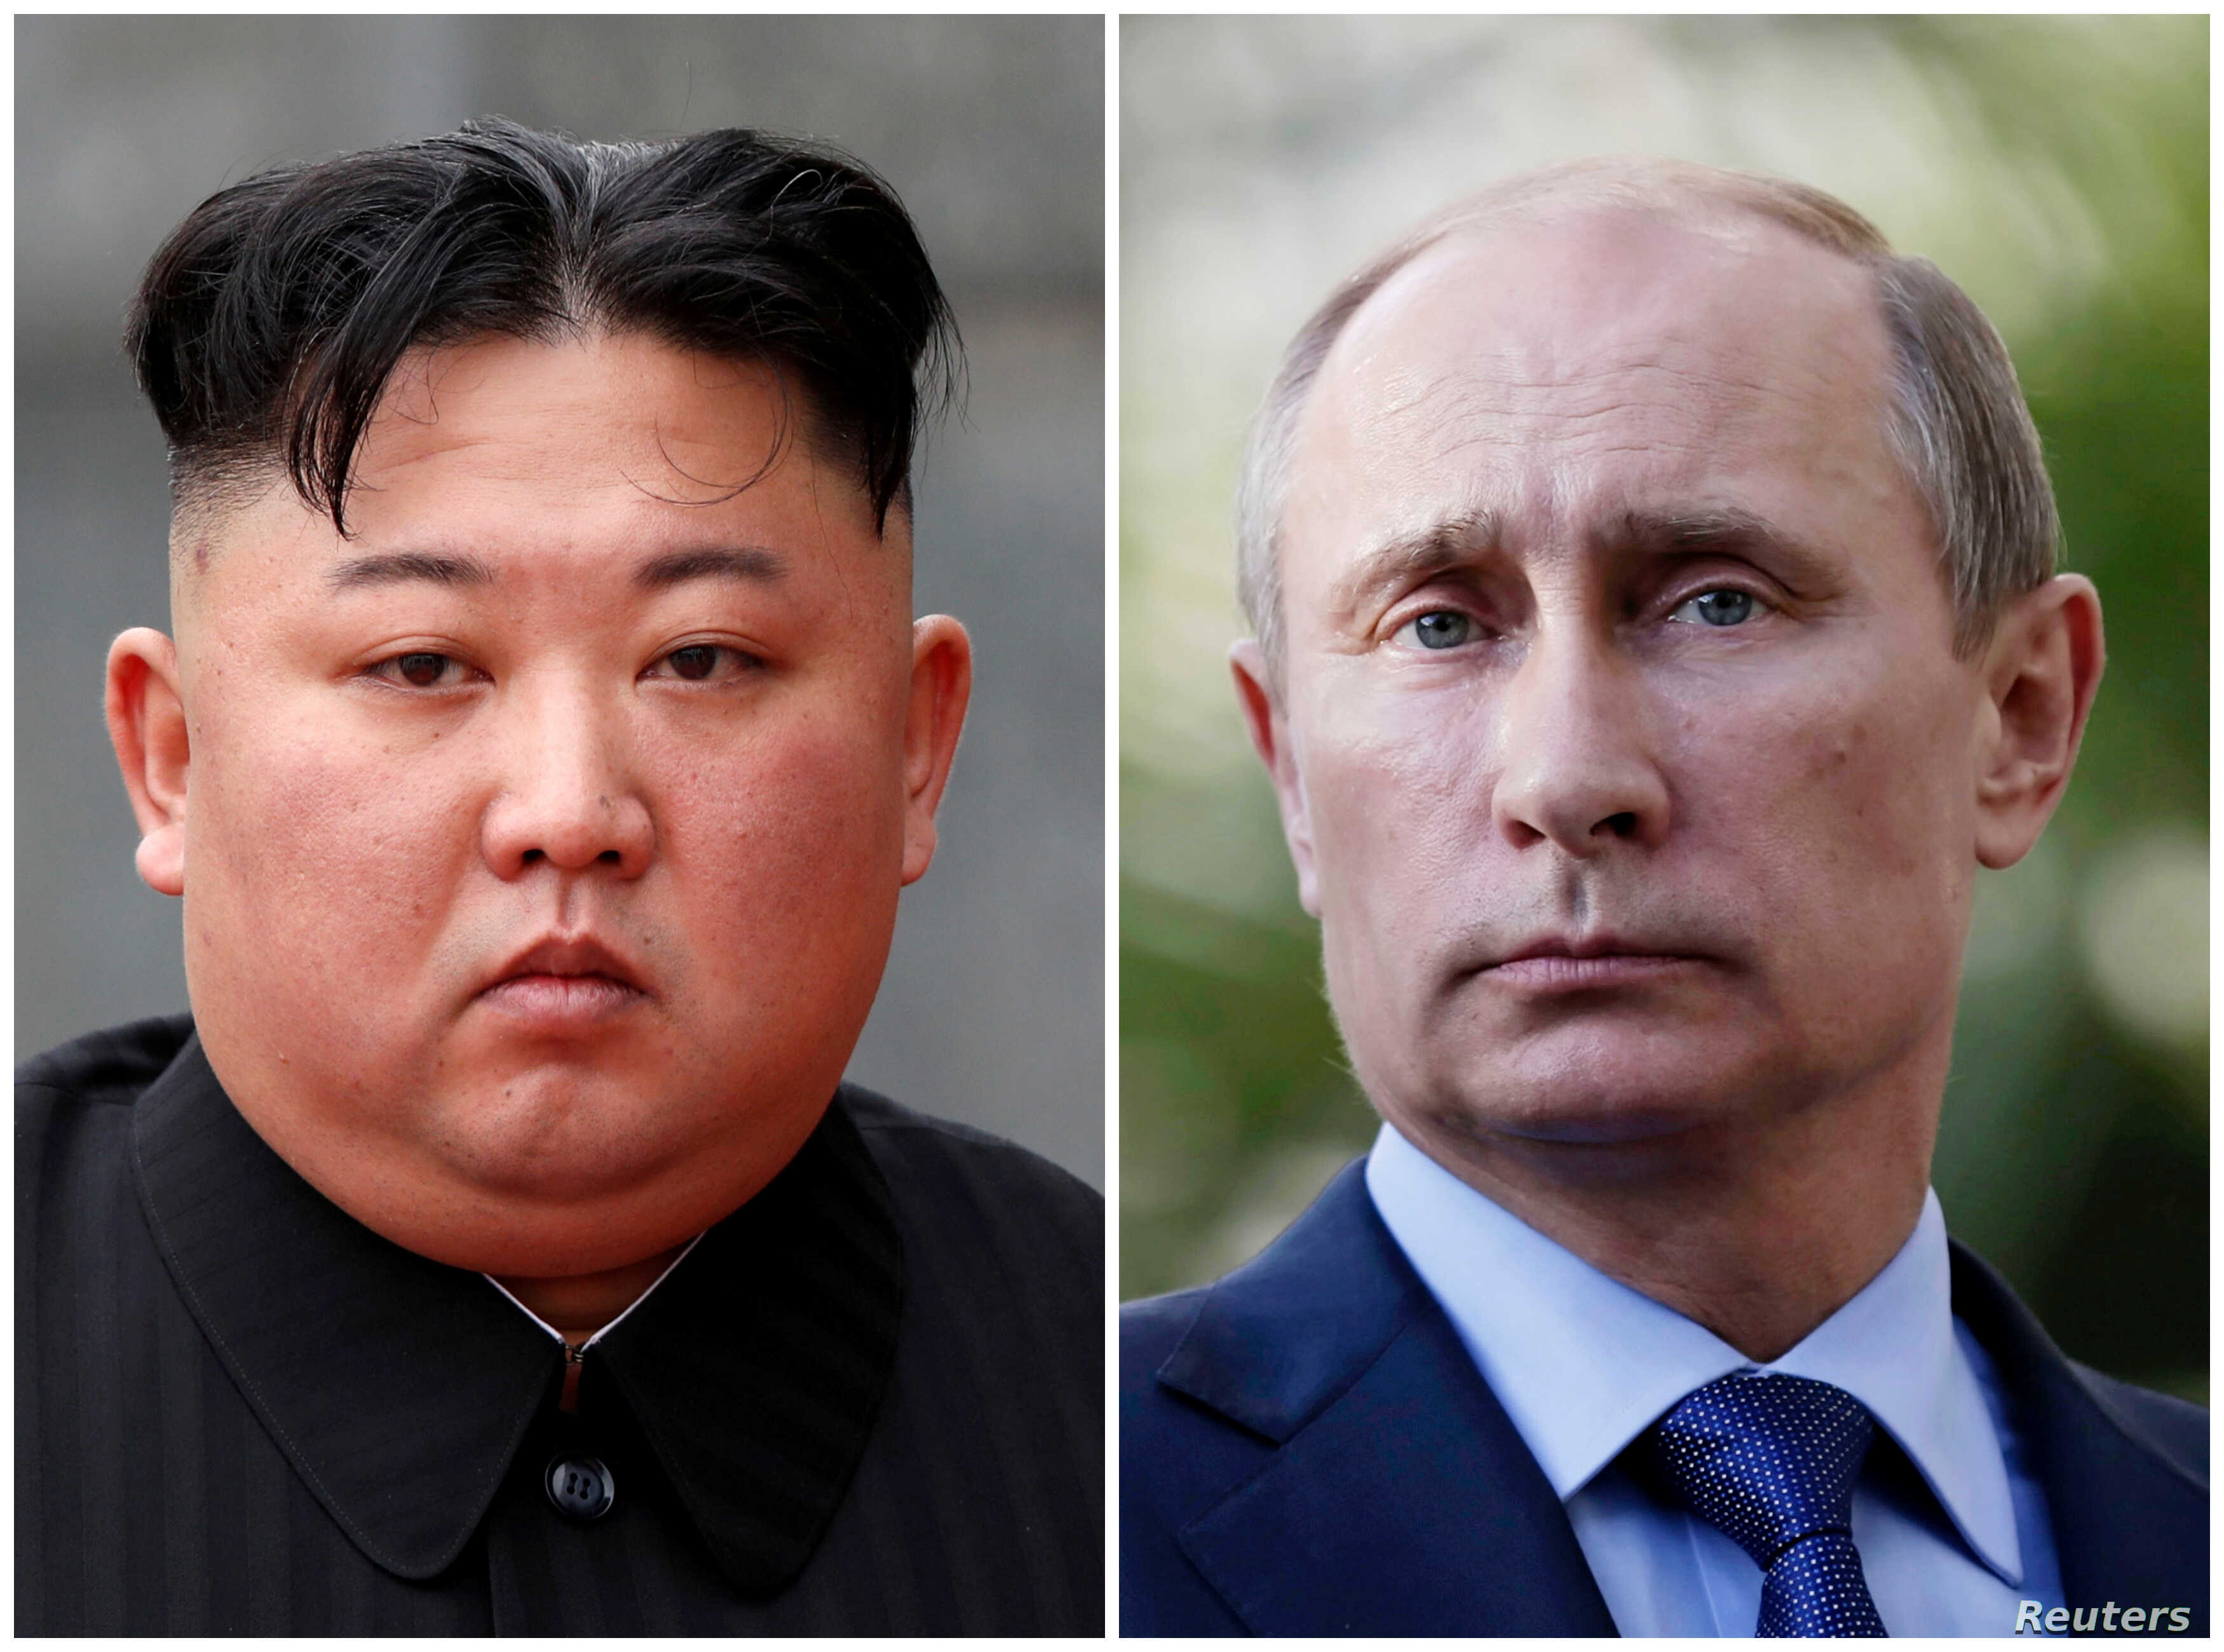 FILE - A combination of file photos shows North Korean leader Kim Jong Un in Hanoi, Vietnam, March 2, 2019, and Russia's President Vladimir Putin during a joint news conference in Sochi, Krasnodar region, Russia, May 16, 2013.